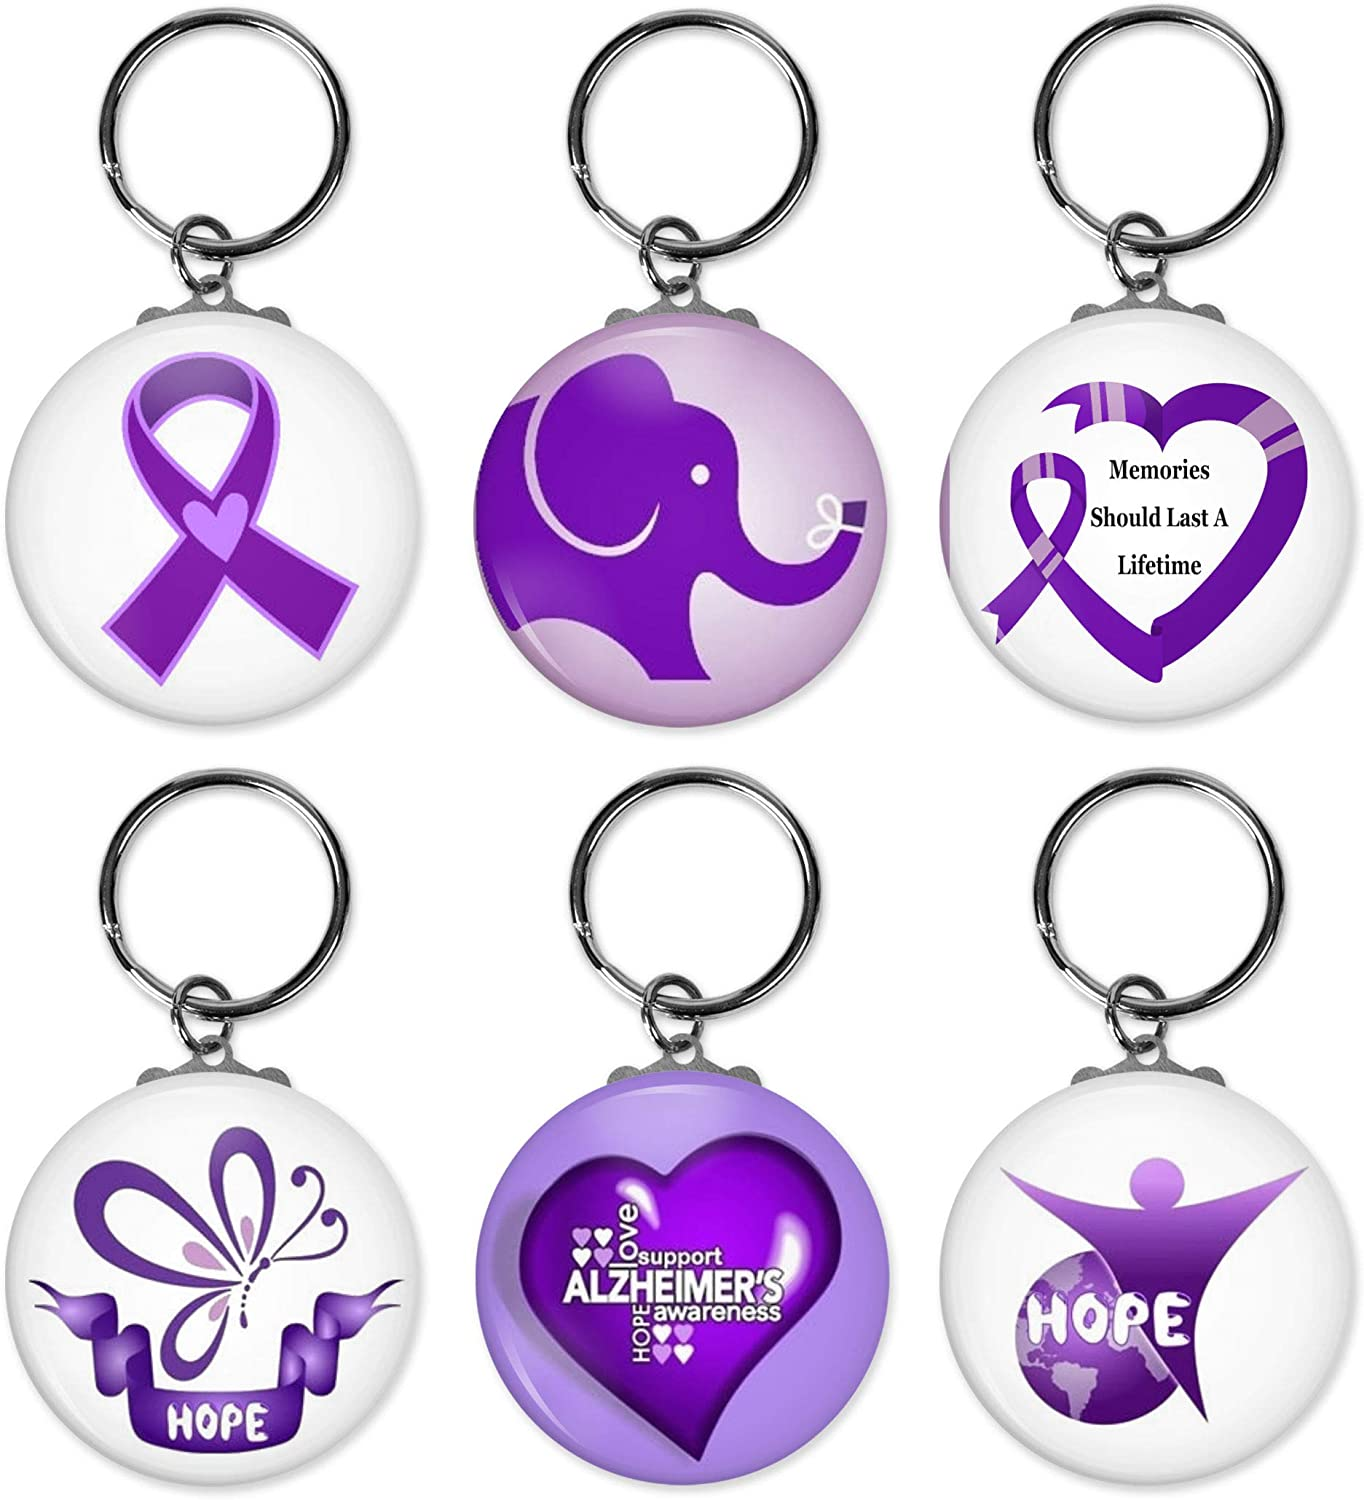 Alzheimer Awareness Support Keychains - For or Groups Events Weekly update B Japan Maker New